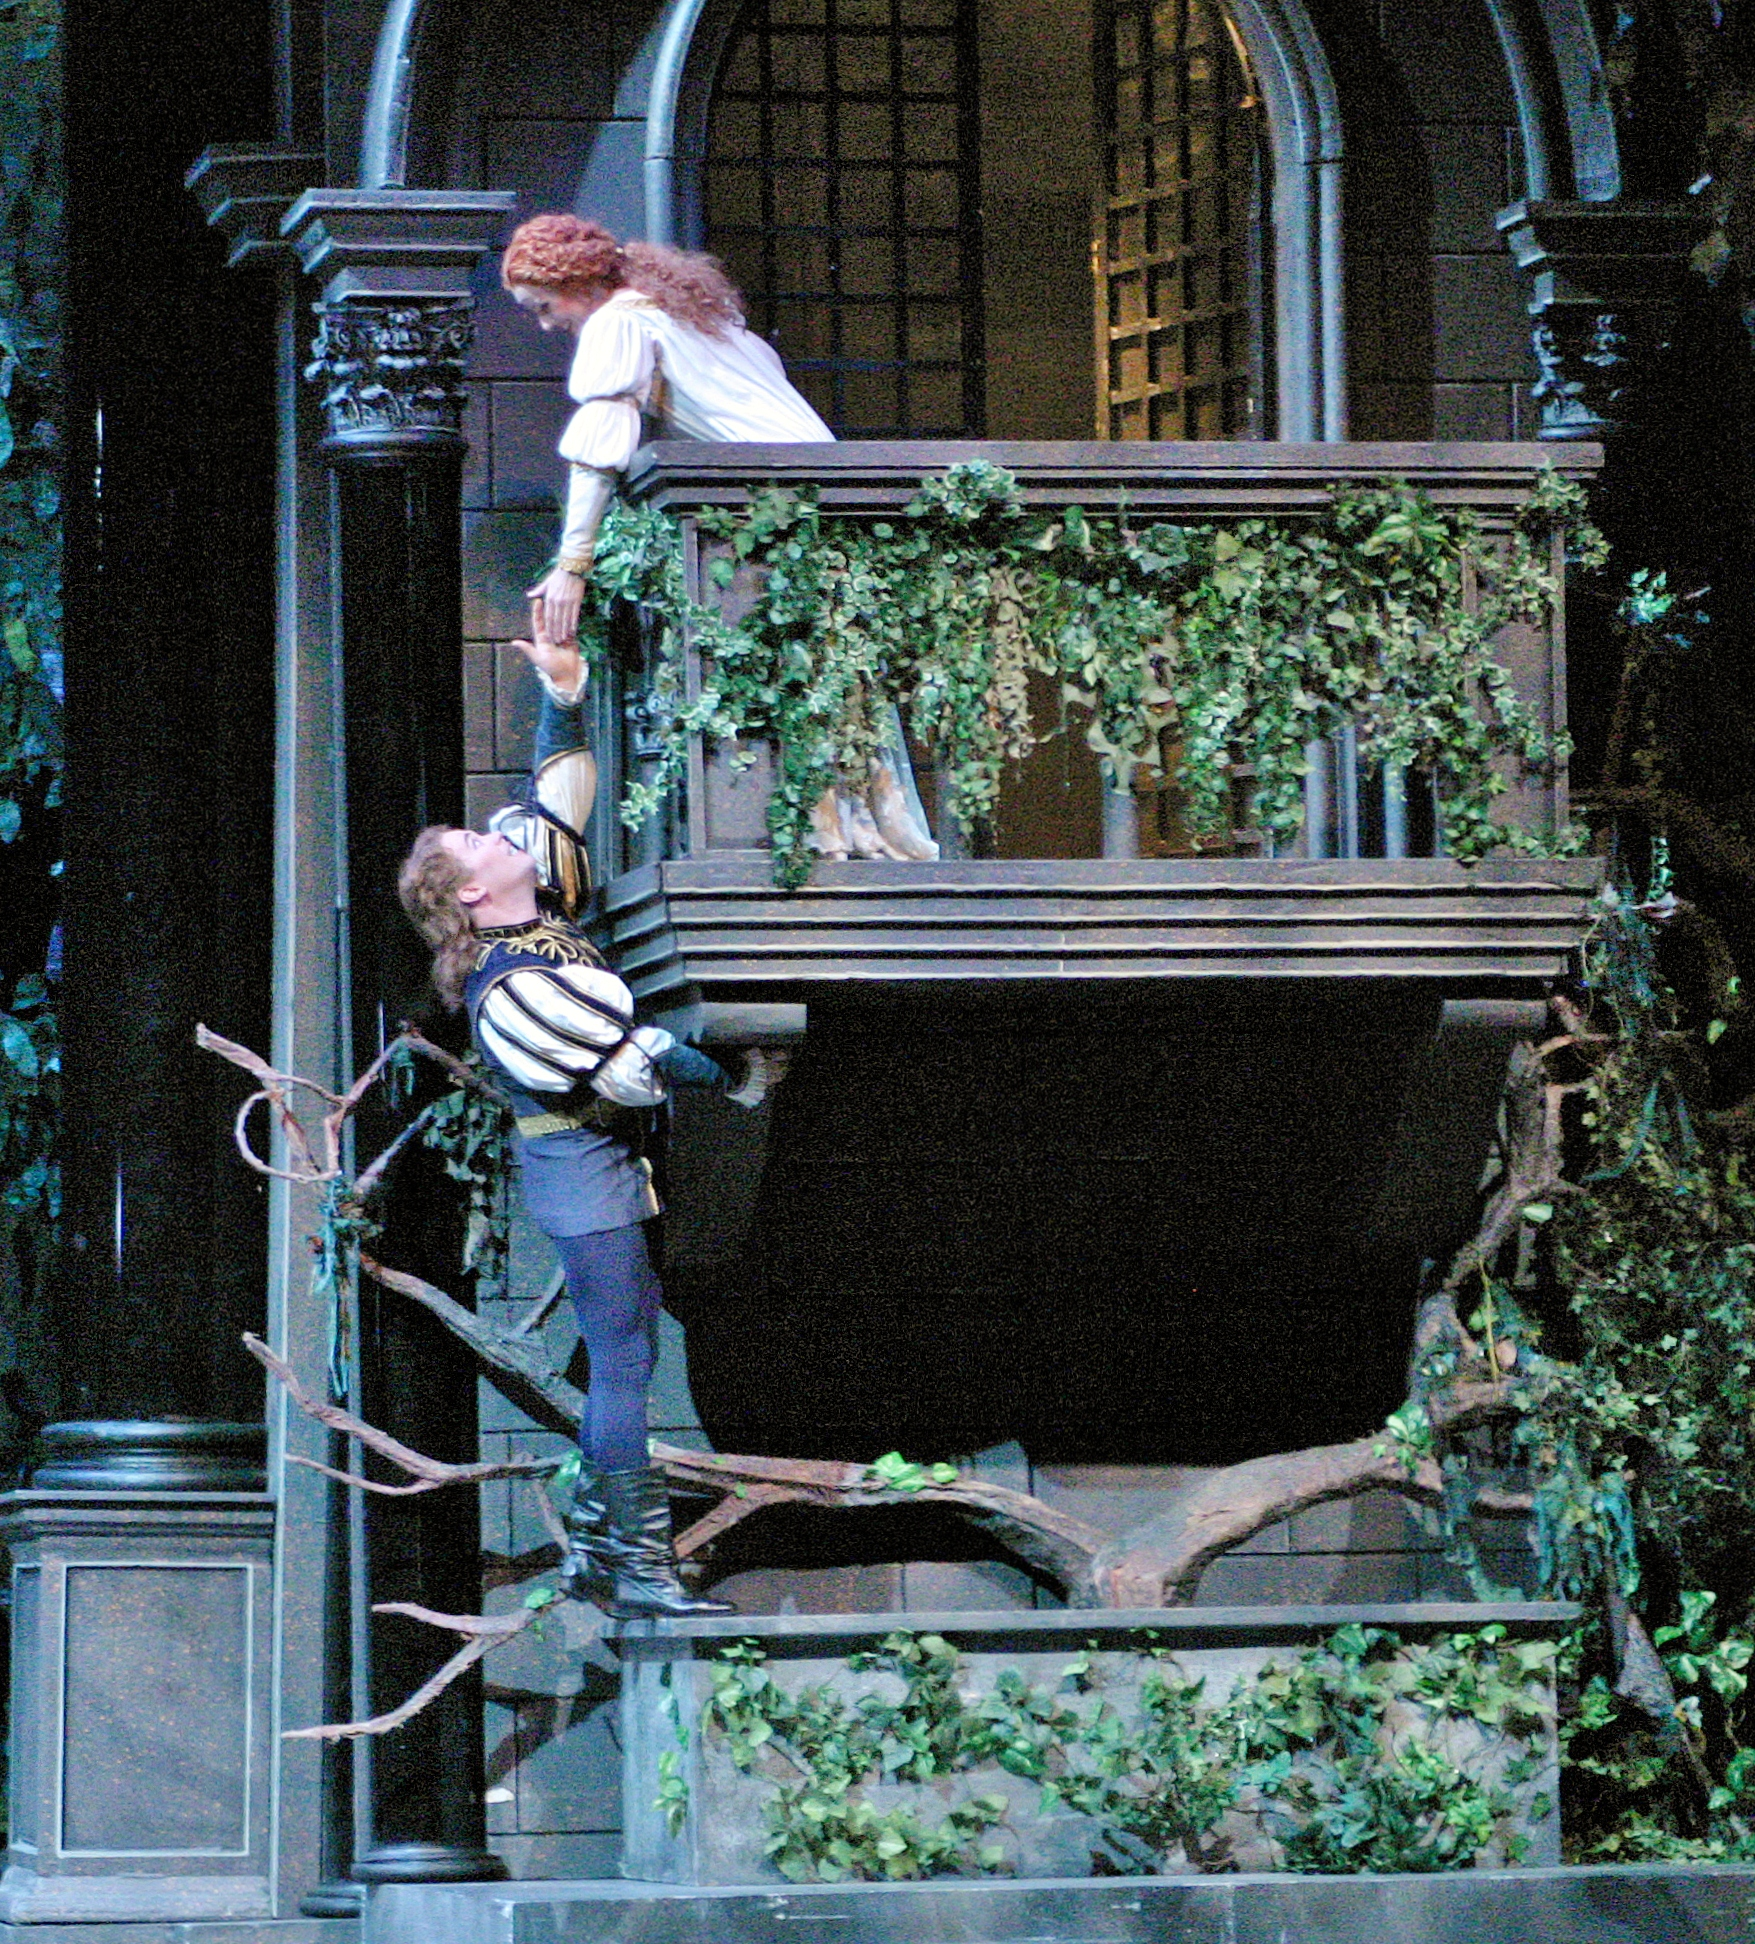 Romeo and juliet balcony scene images for On the balcony